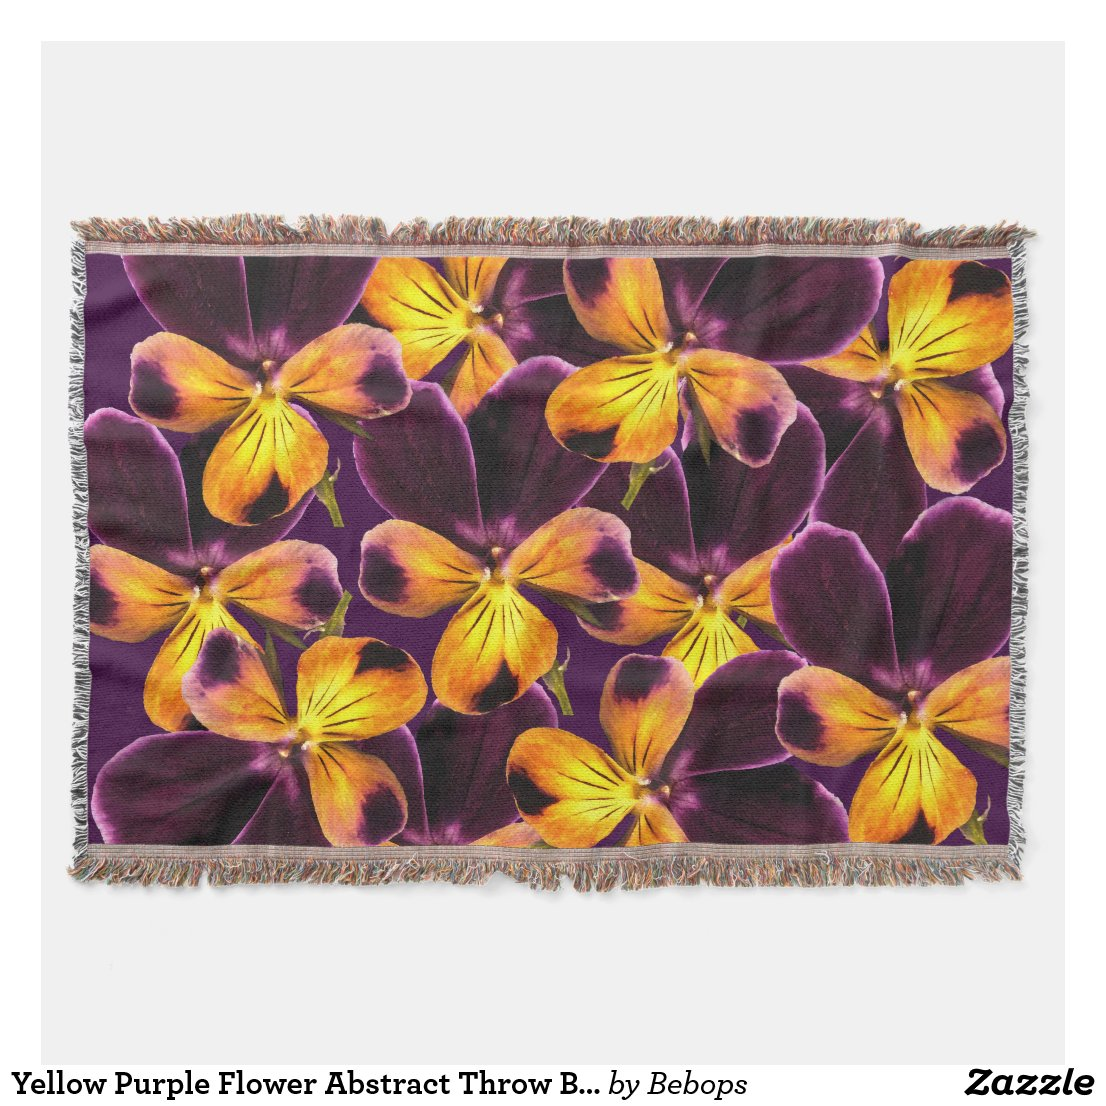 Yellow Purple Flower Abstract Throw Blanket